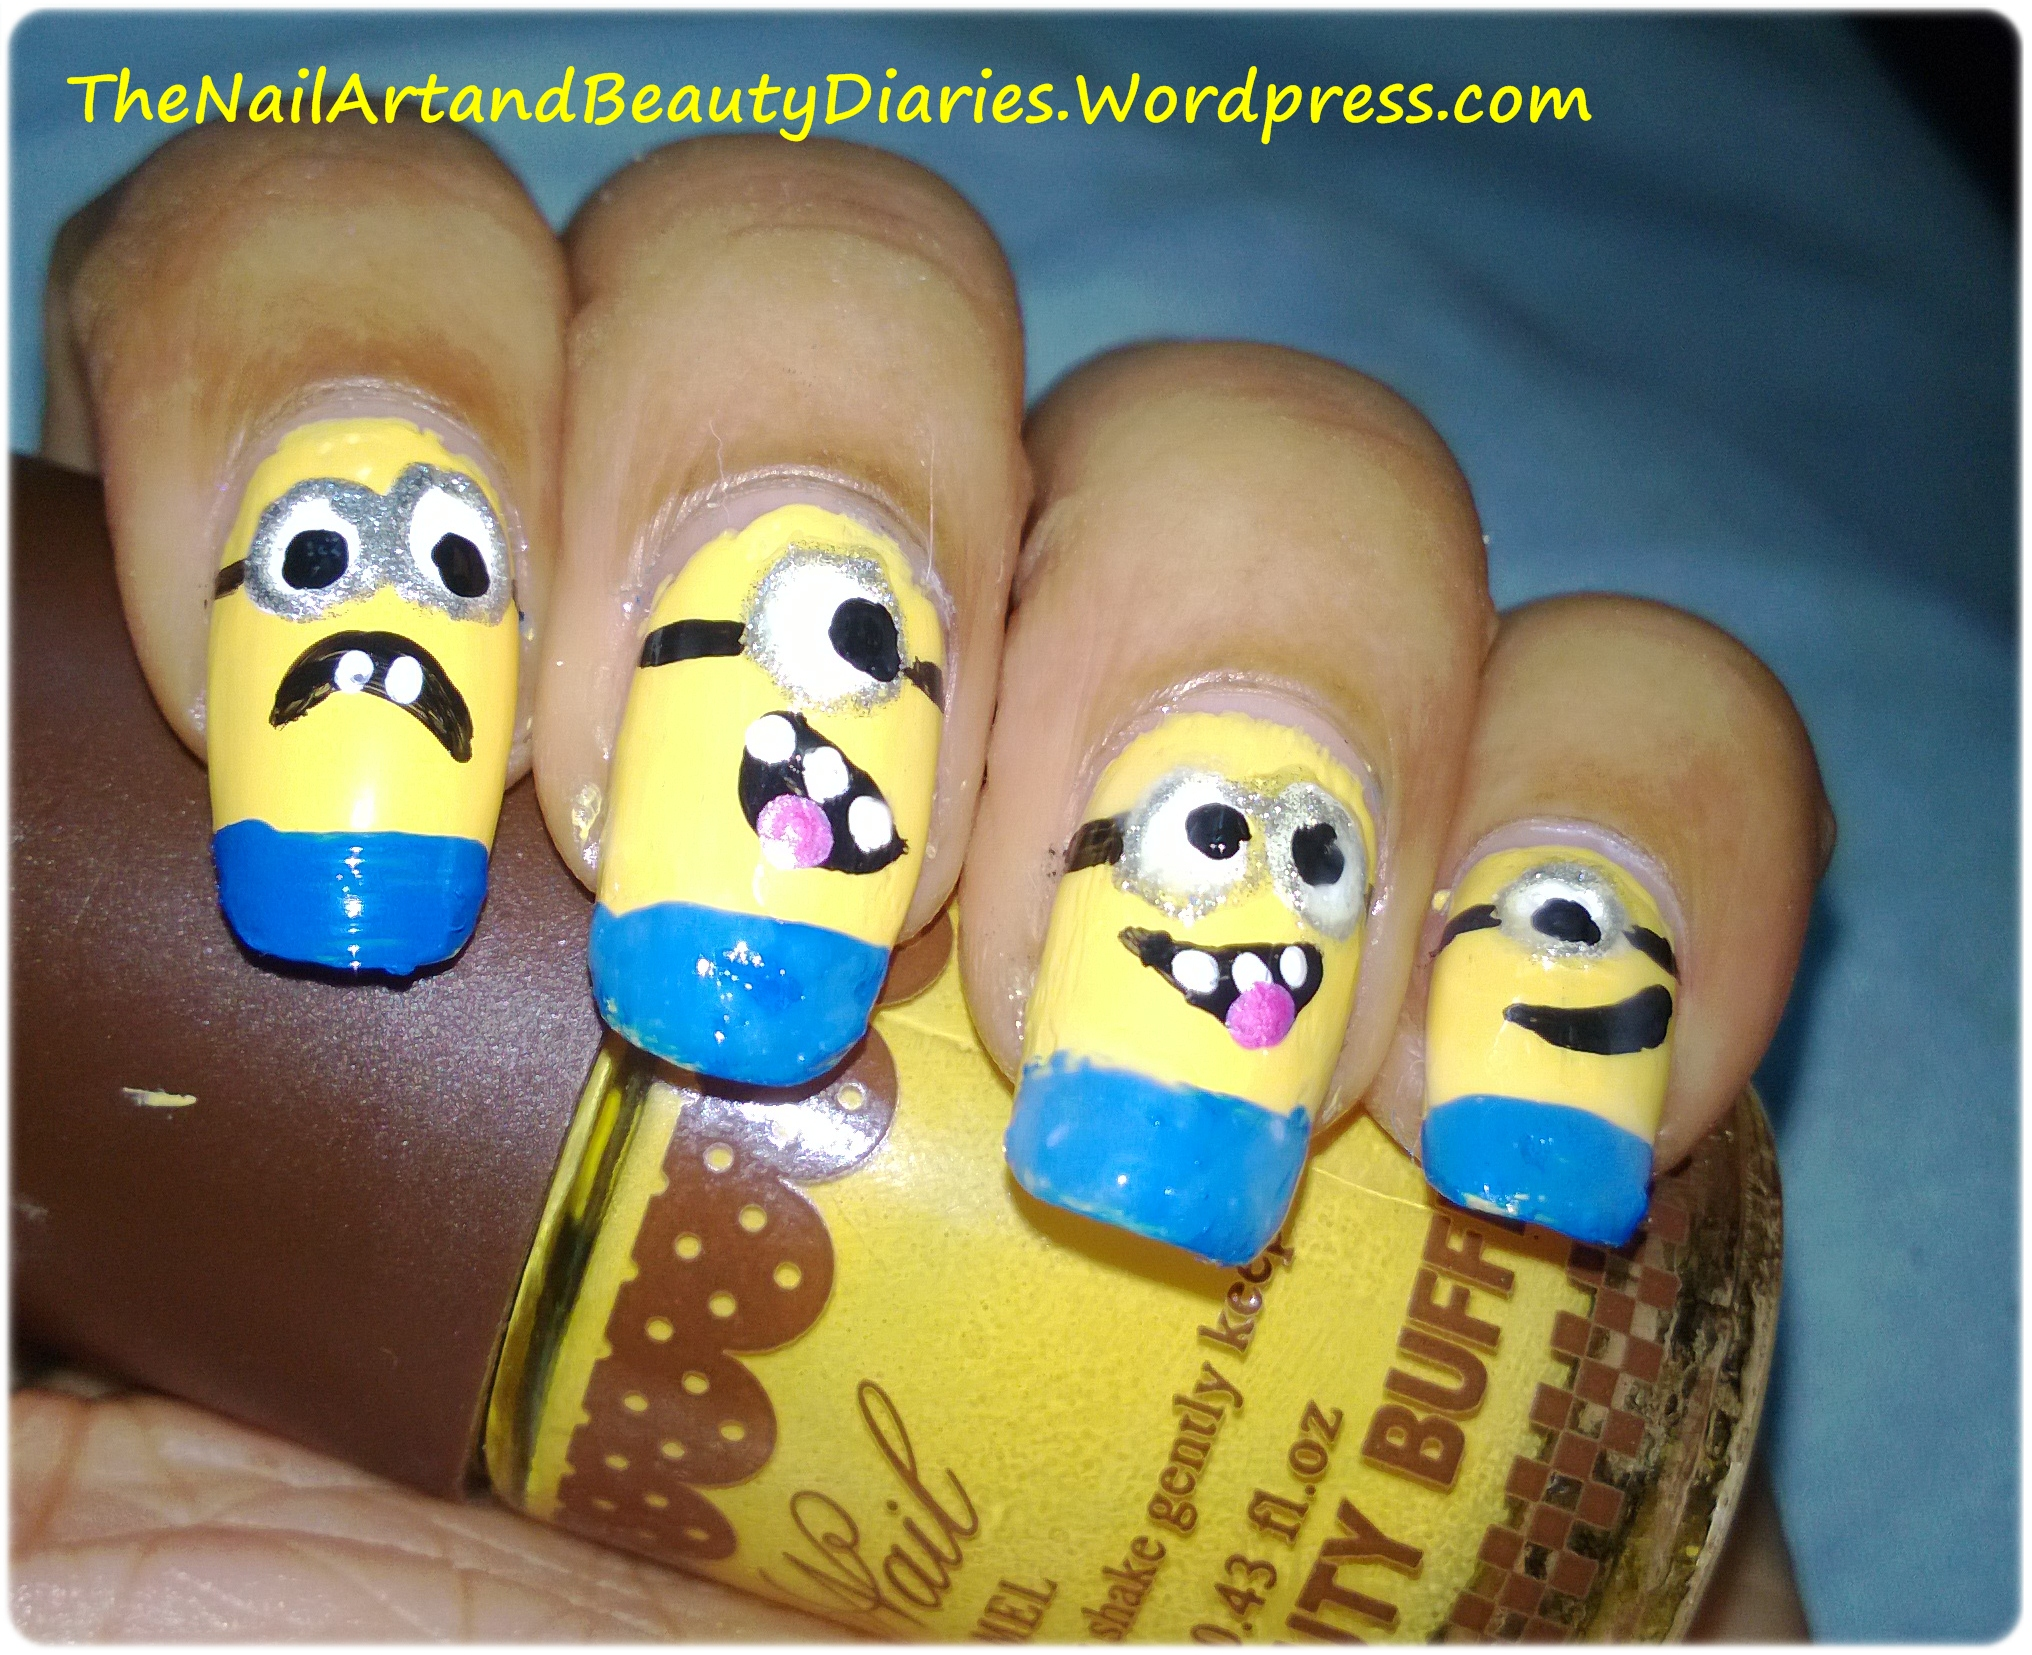 The Despicable Me Movie Inspired Nail Art | The Nail Art and Beauty ...